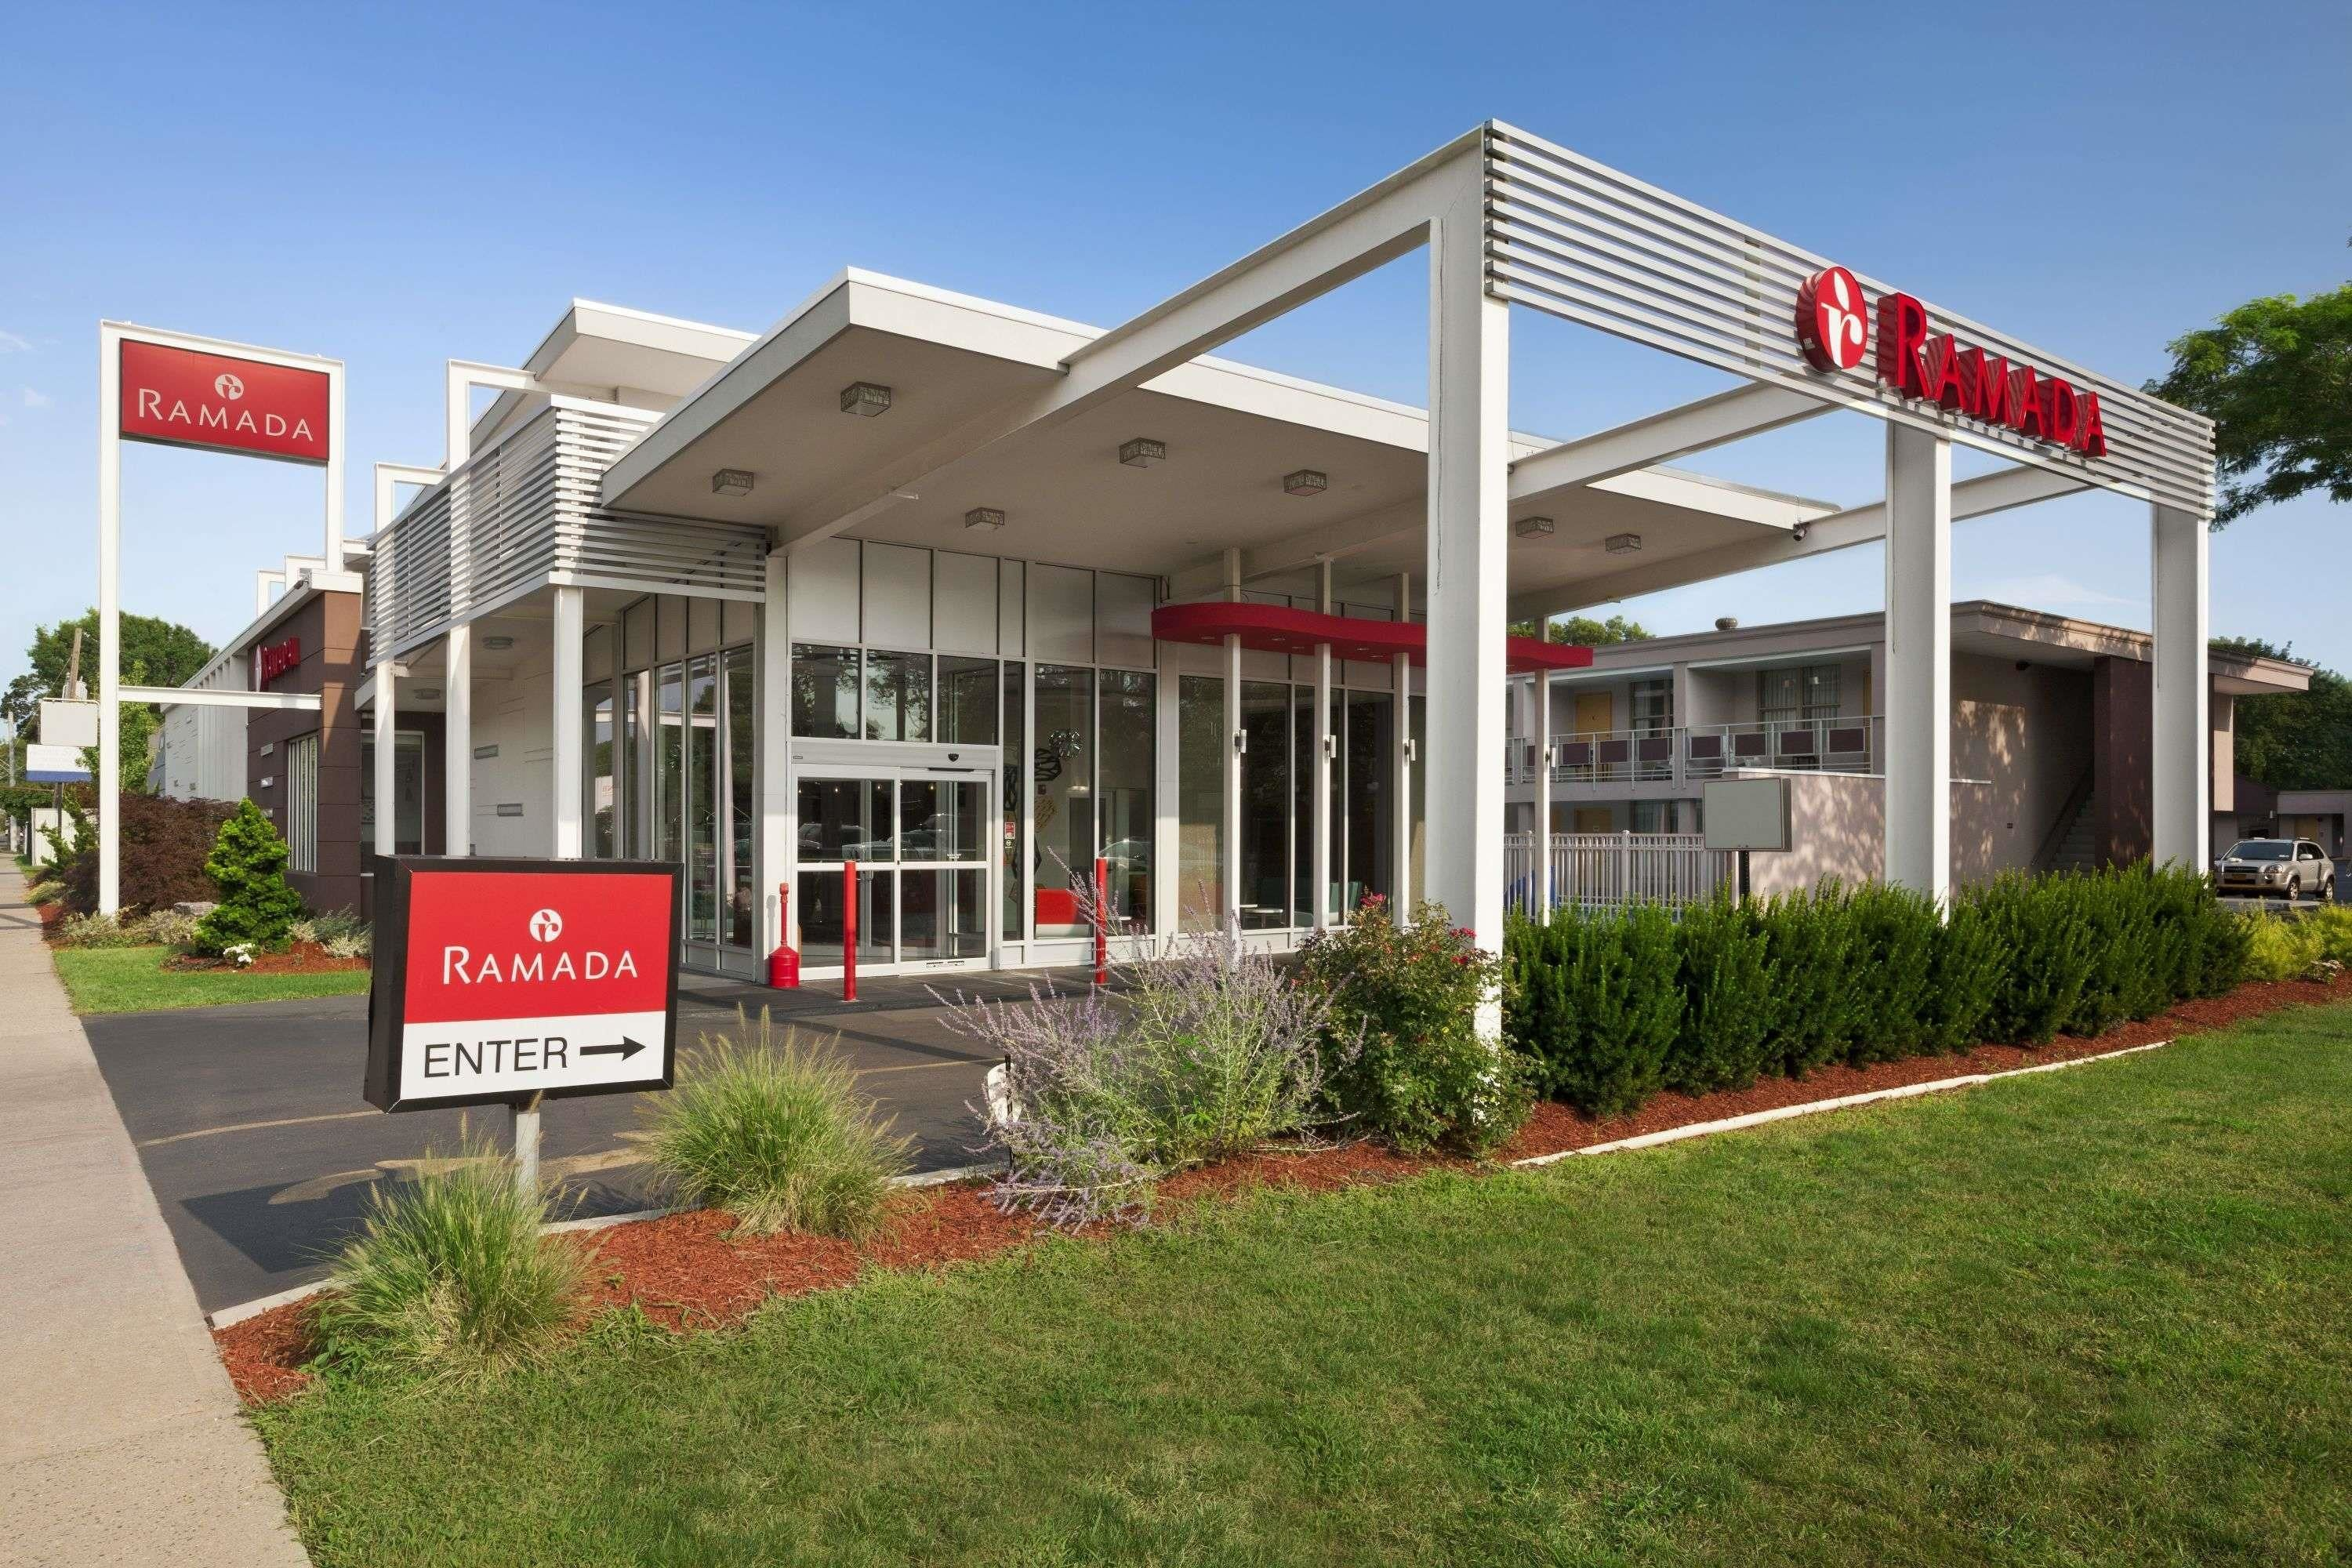 Ramada Inn and Suites of Rockville Centre